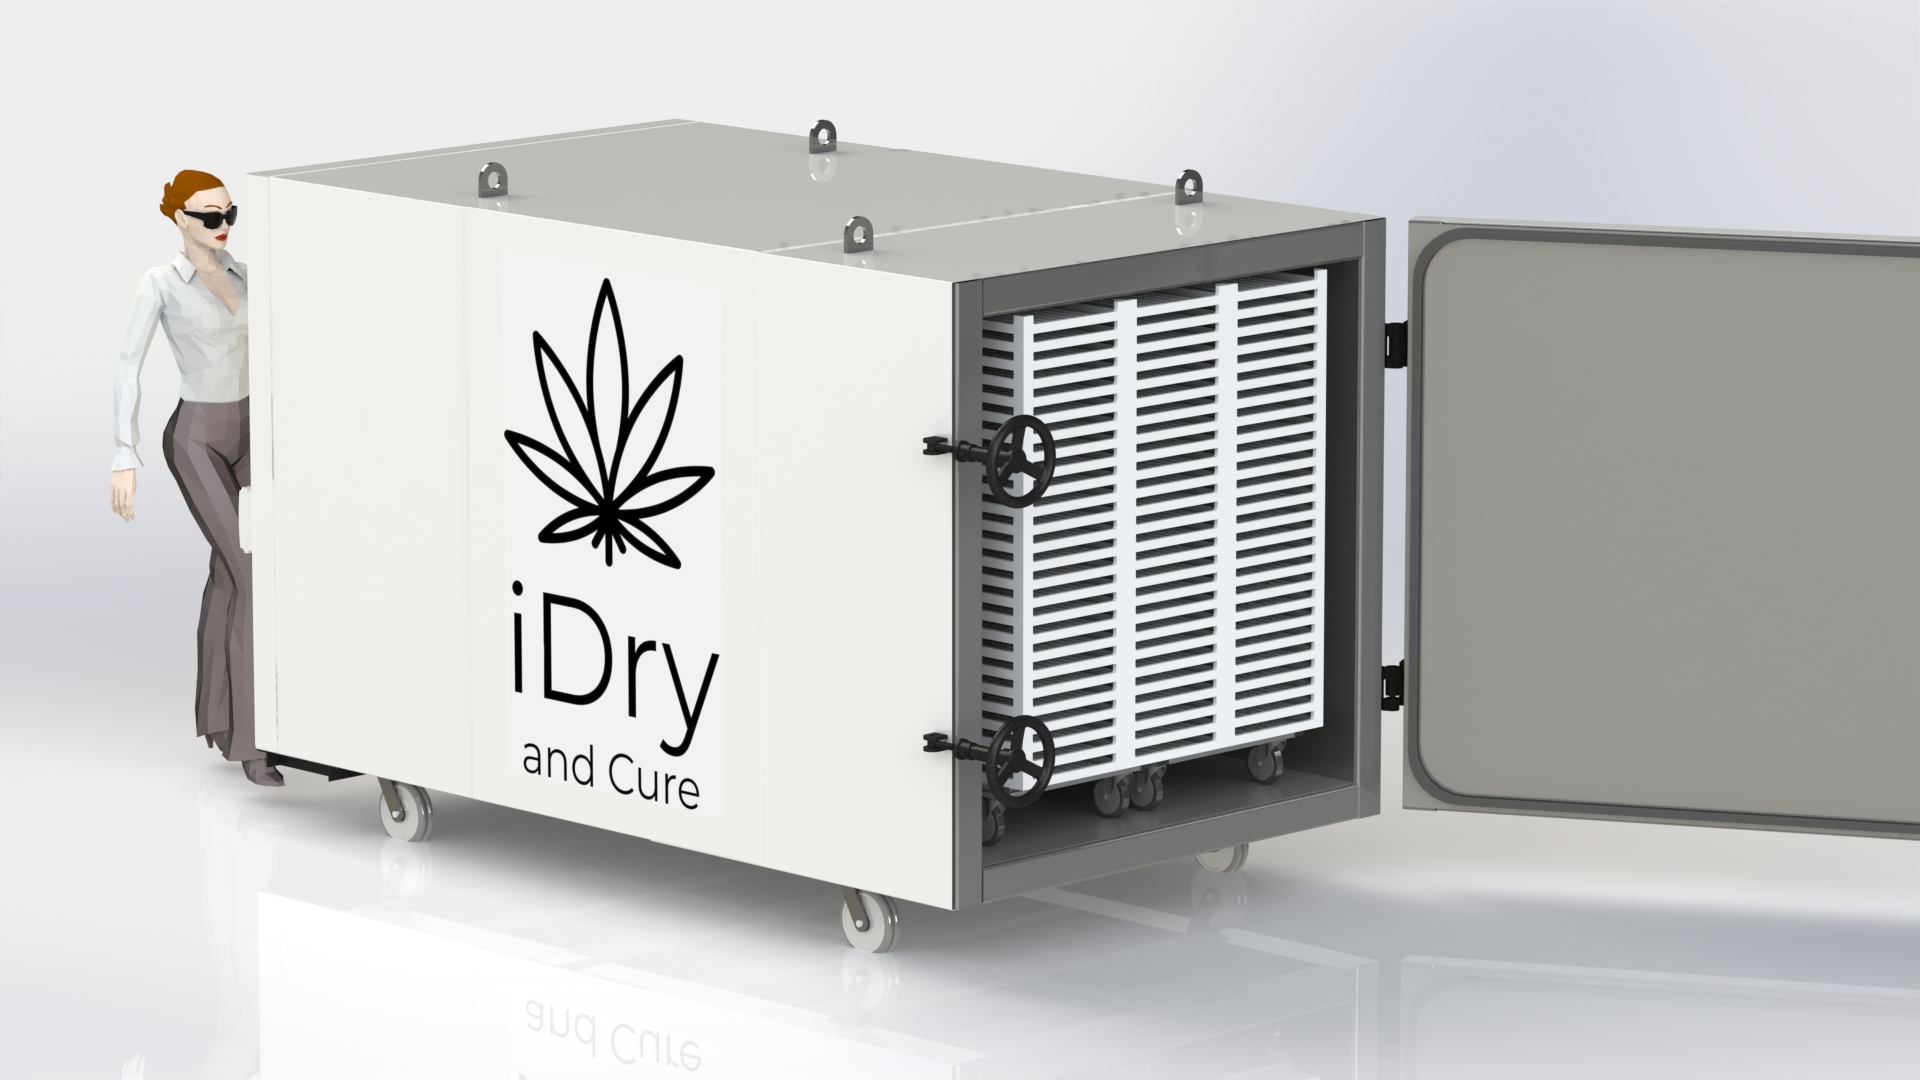 iDry and Cure Micro Cannabis Dryer